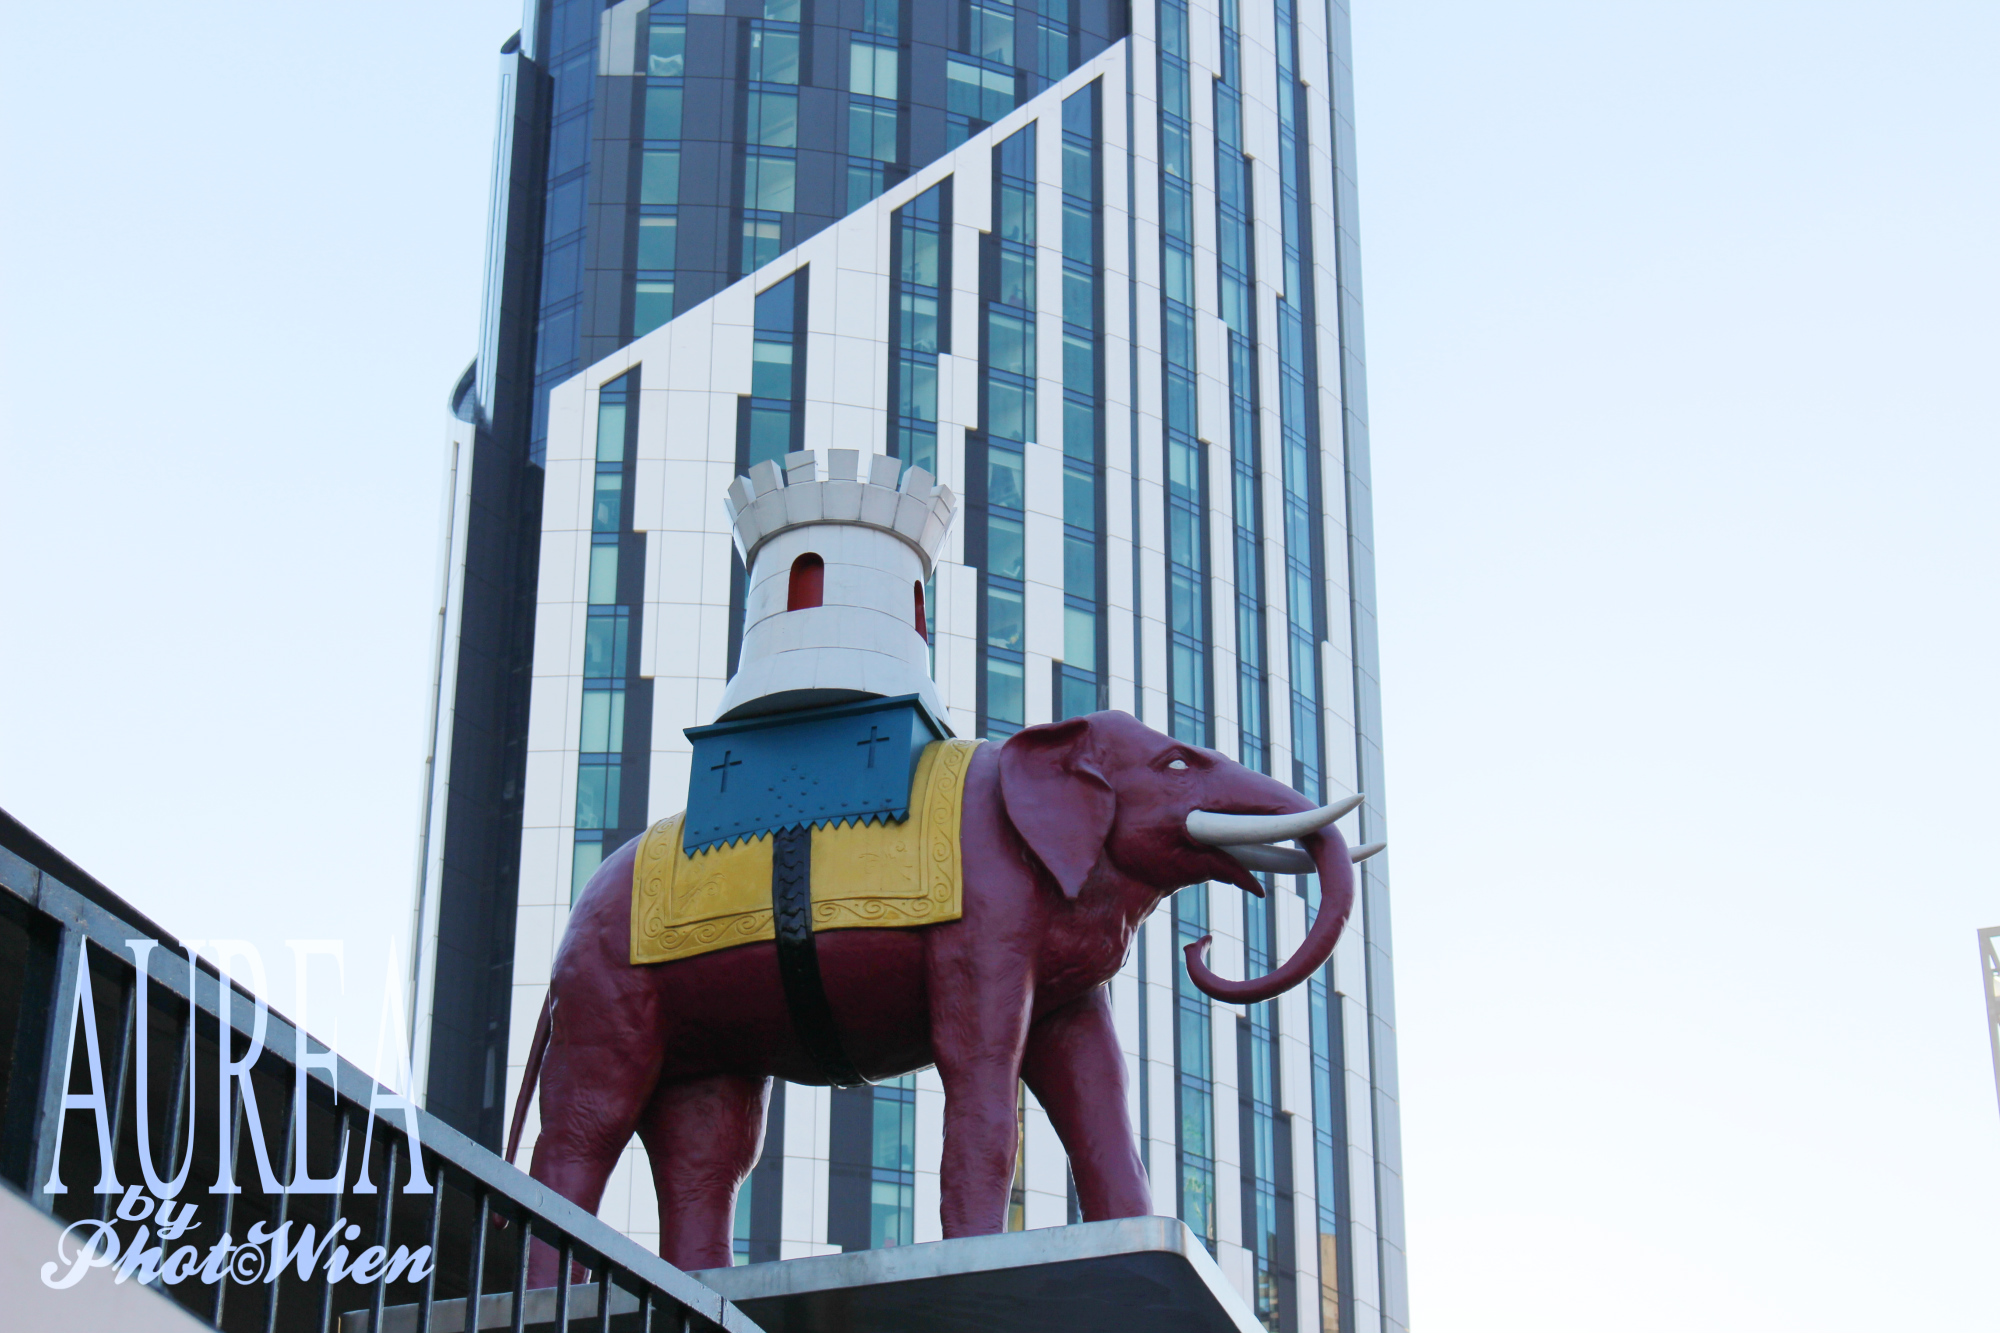 strata-tower-and-elephant